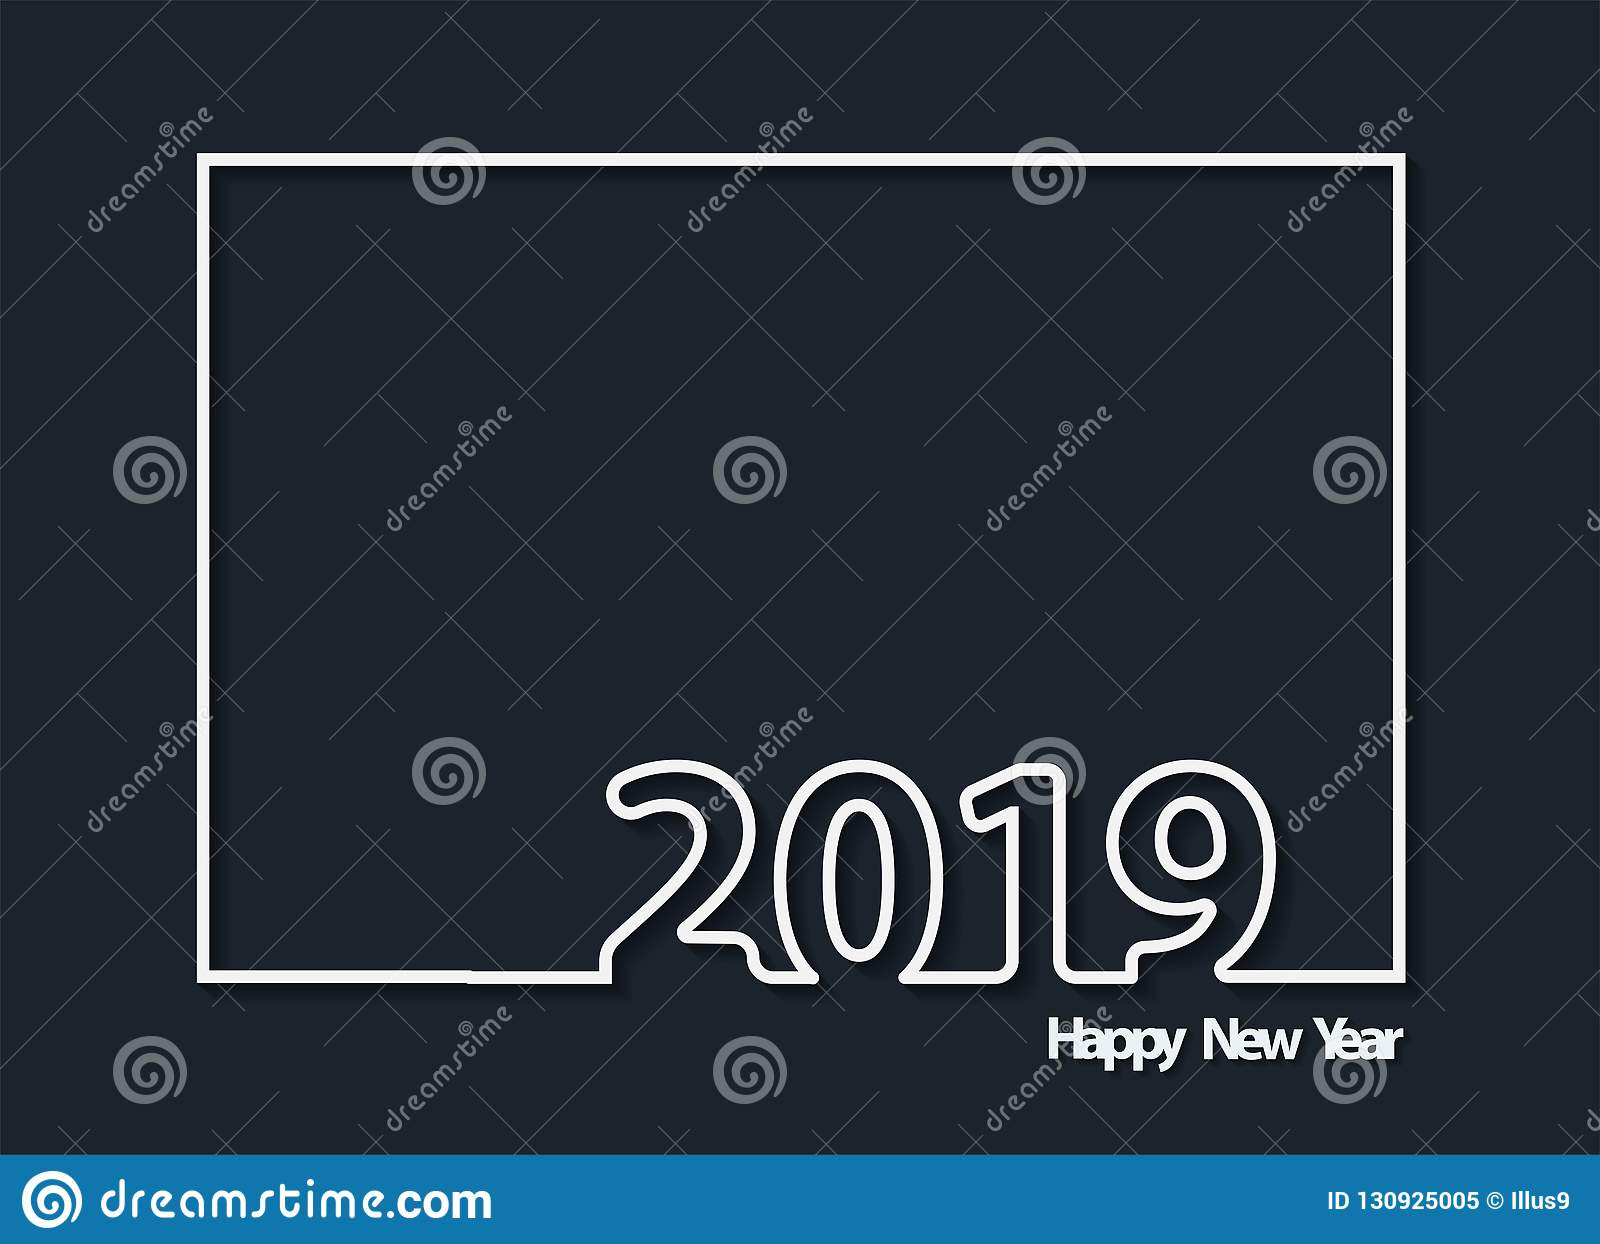 vector happy new 2019 year background flyers